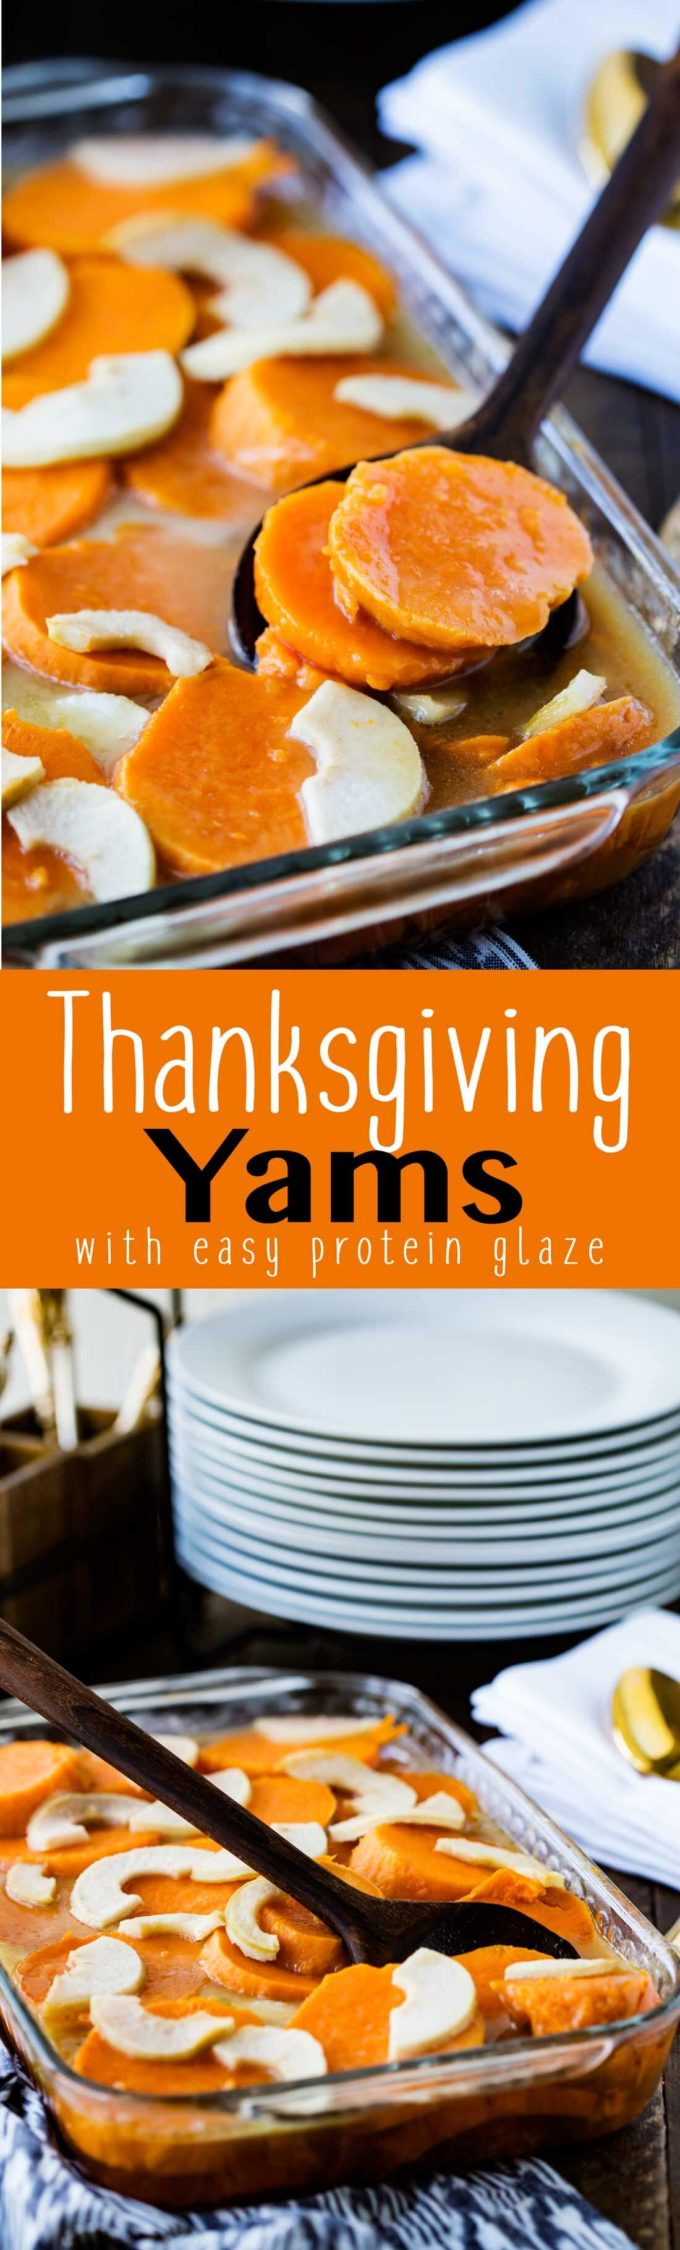 These are the BEST Thanksgiving Yams ever. They are not too sweet and are super easy to make.